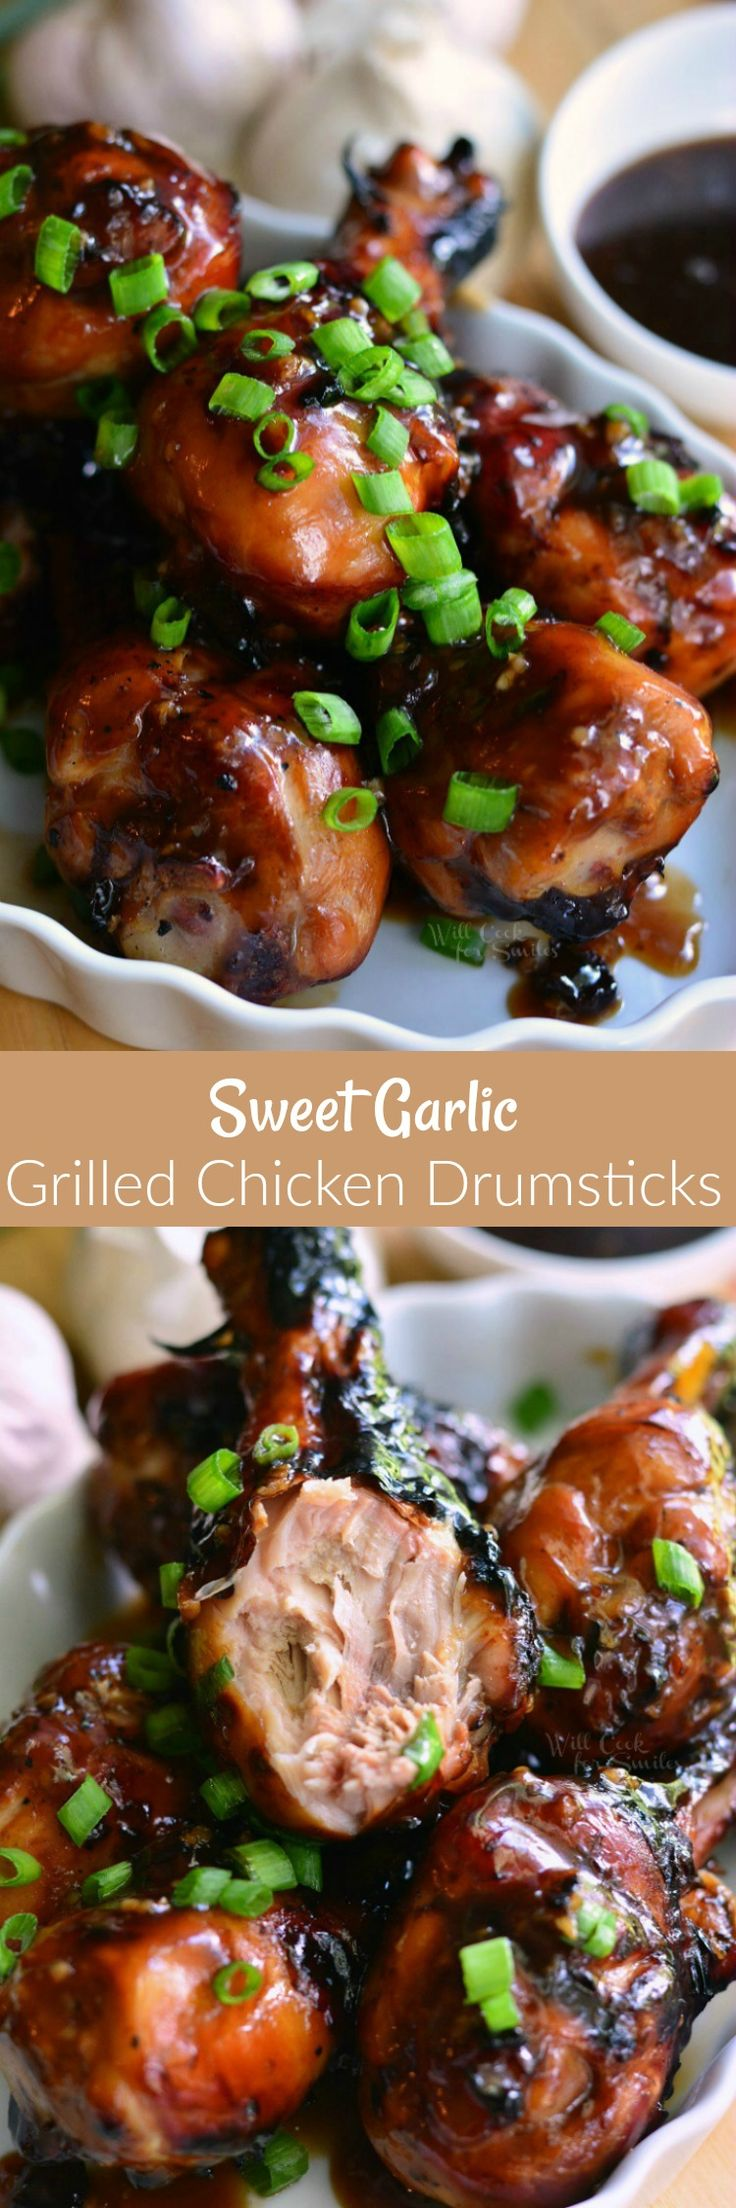 Sweet Garlic Grilled Chicken Drumsticks. Simple dinner, easily prepped ahead of time. Unbelievably delicious grilled chicken drumsticks marinated and then coated in a homemade sweet garlic sauce. (Chicken Drumsticks)